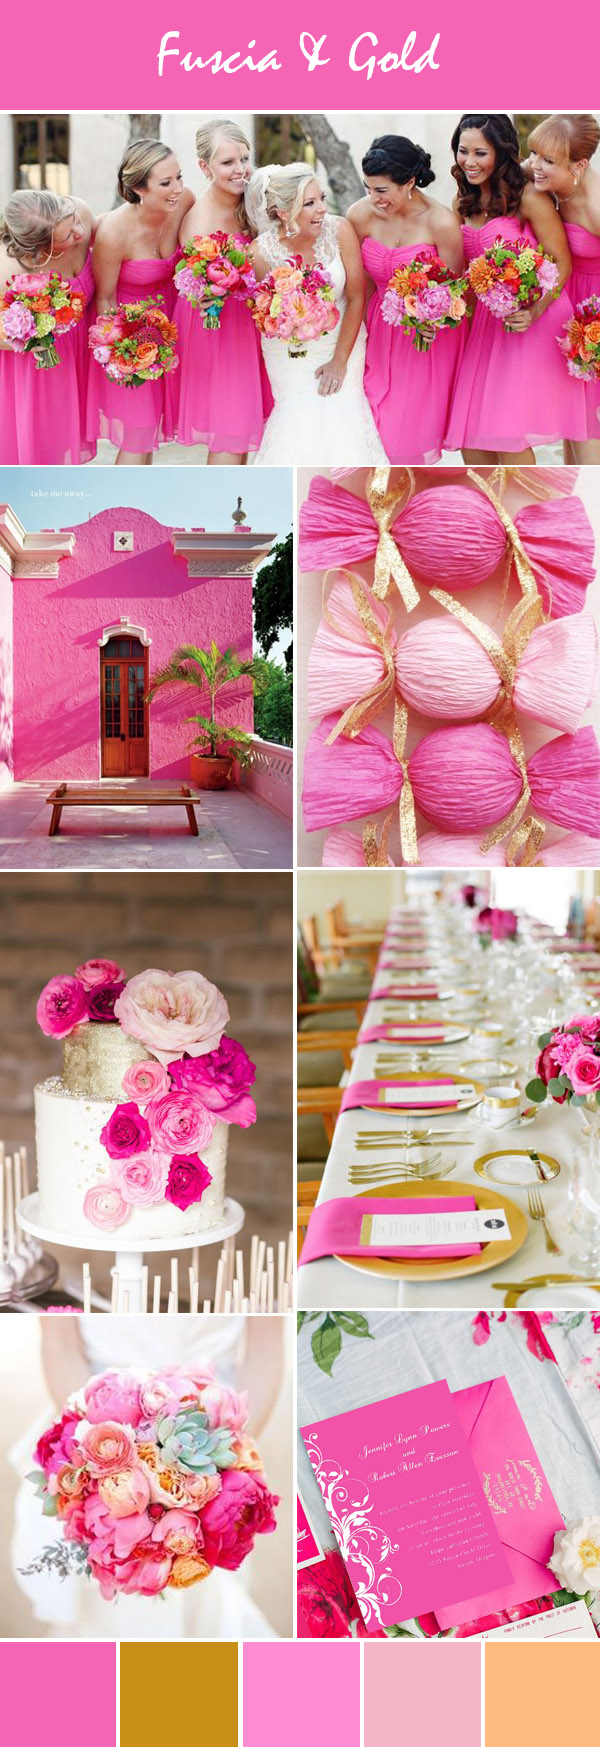 Having a Pink Theme Wedding for Your Special Day ...